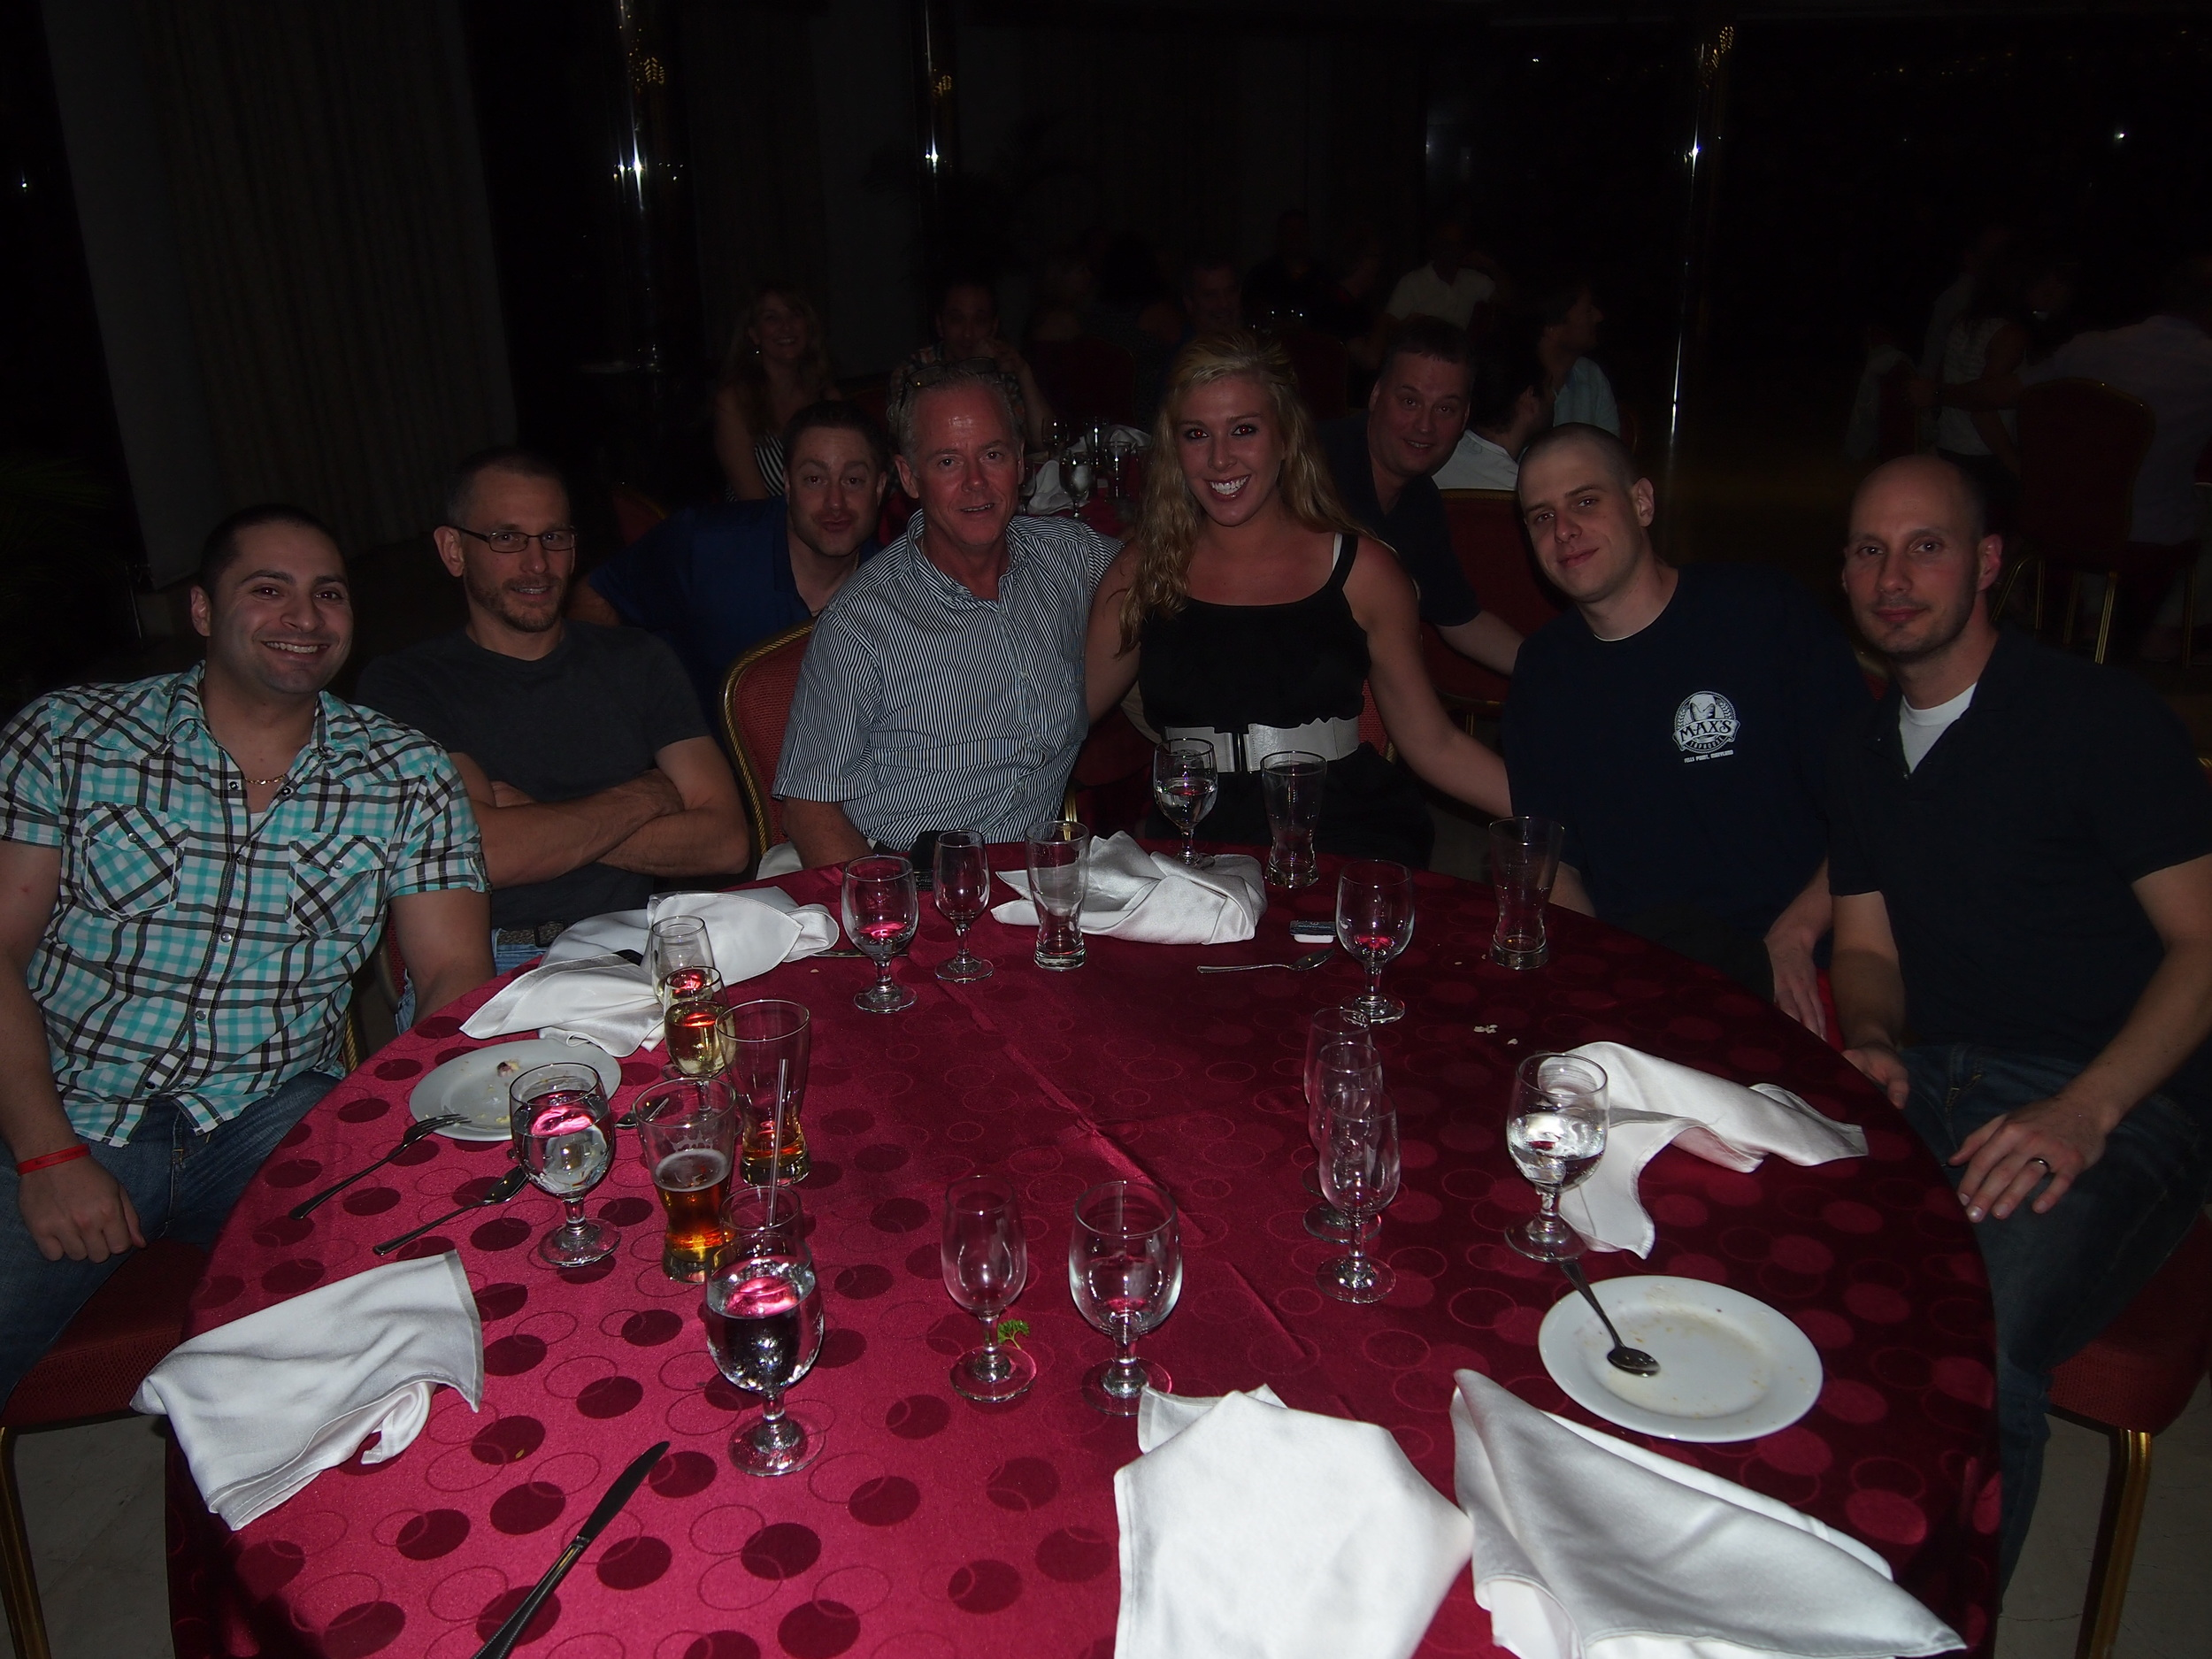 This is from our team dinner Wednesday night. Seated at the table are Paul, Steve, Mike, Lisa, Mike and Adam. Photo-bombing in are Dominick and Ron.